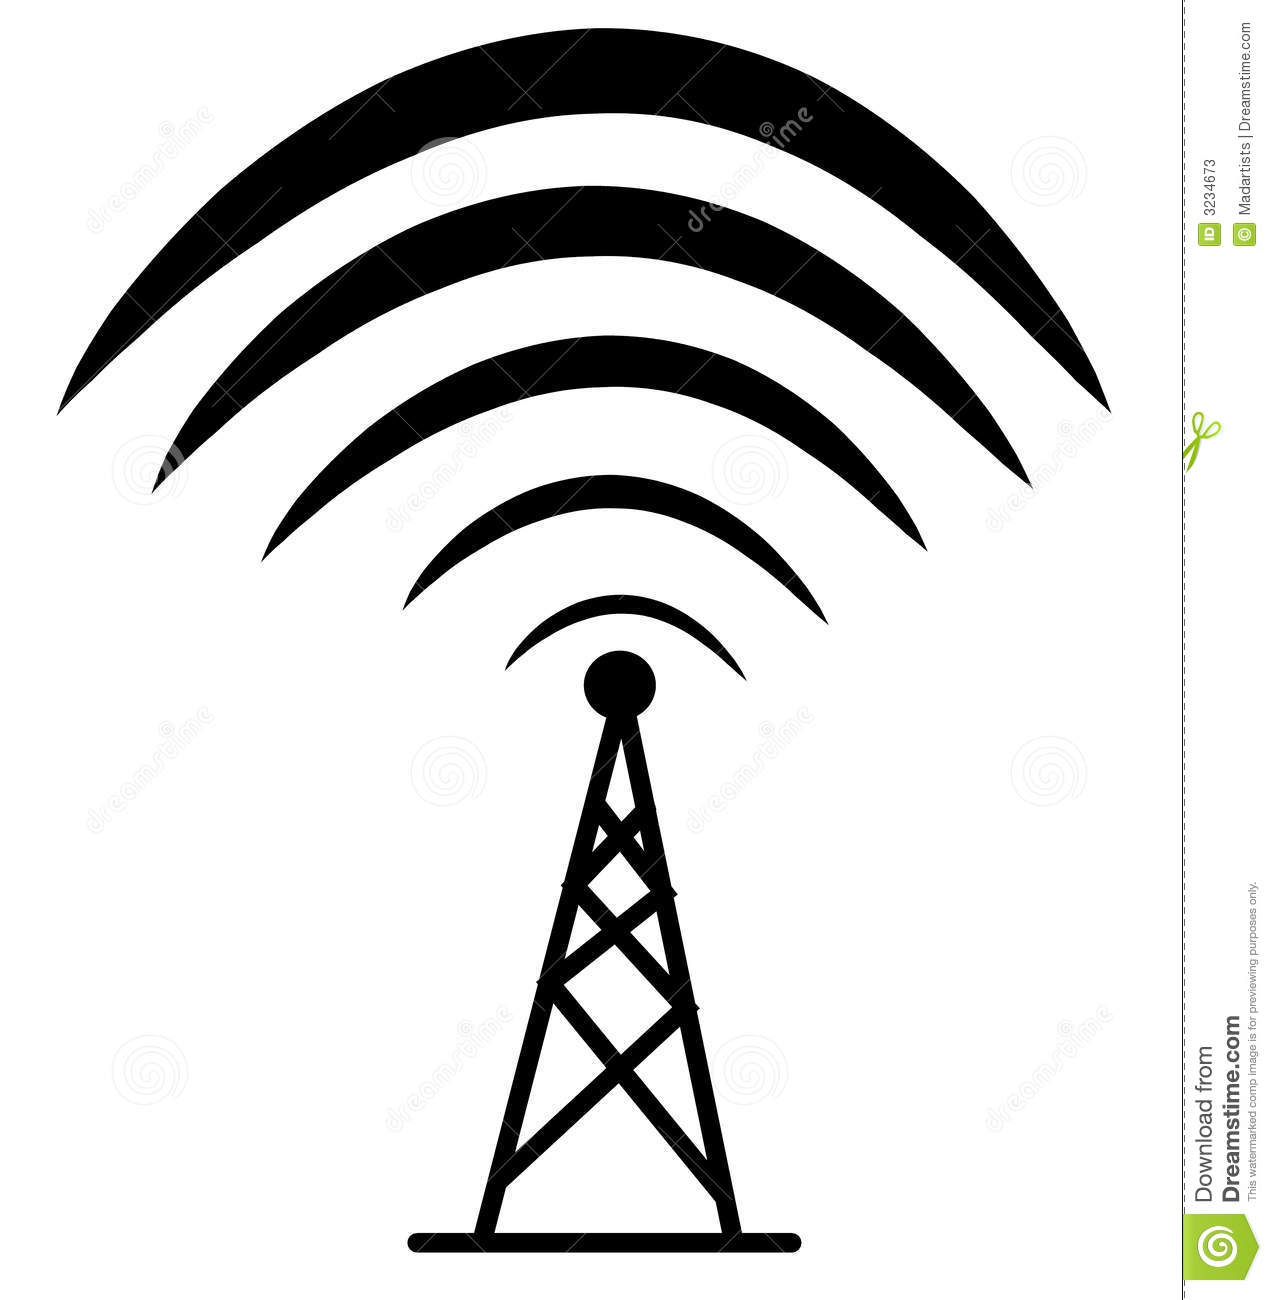 Clip Art Illustration Of A Wireless Technology Tower In Simple Black